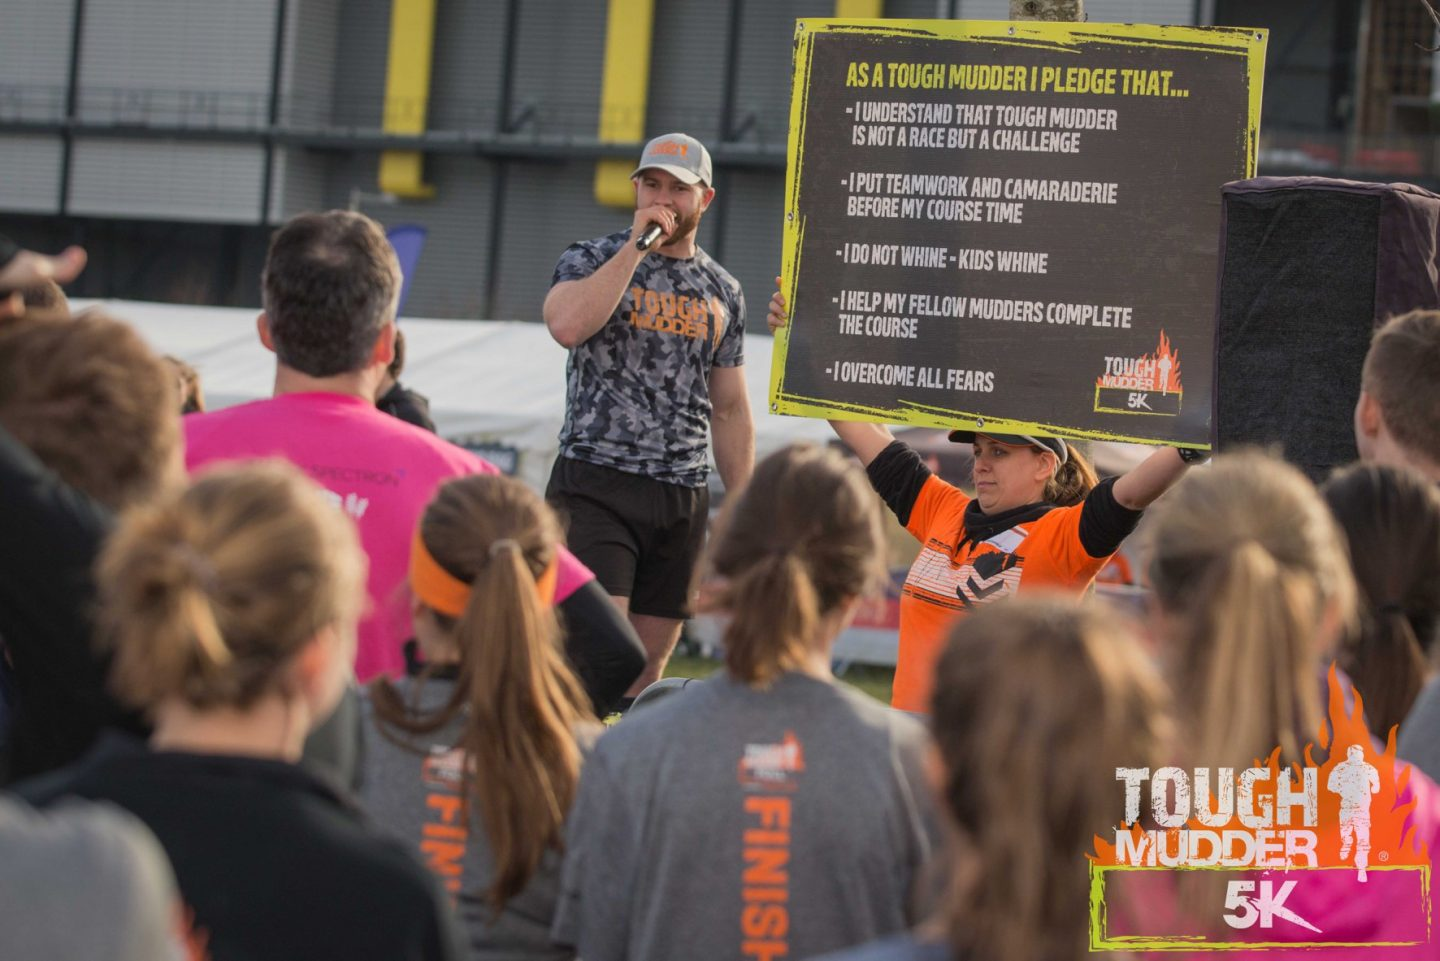 Tough Mudder 5km Mudder Pledge